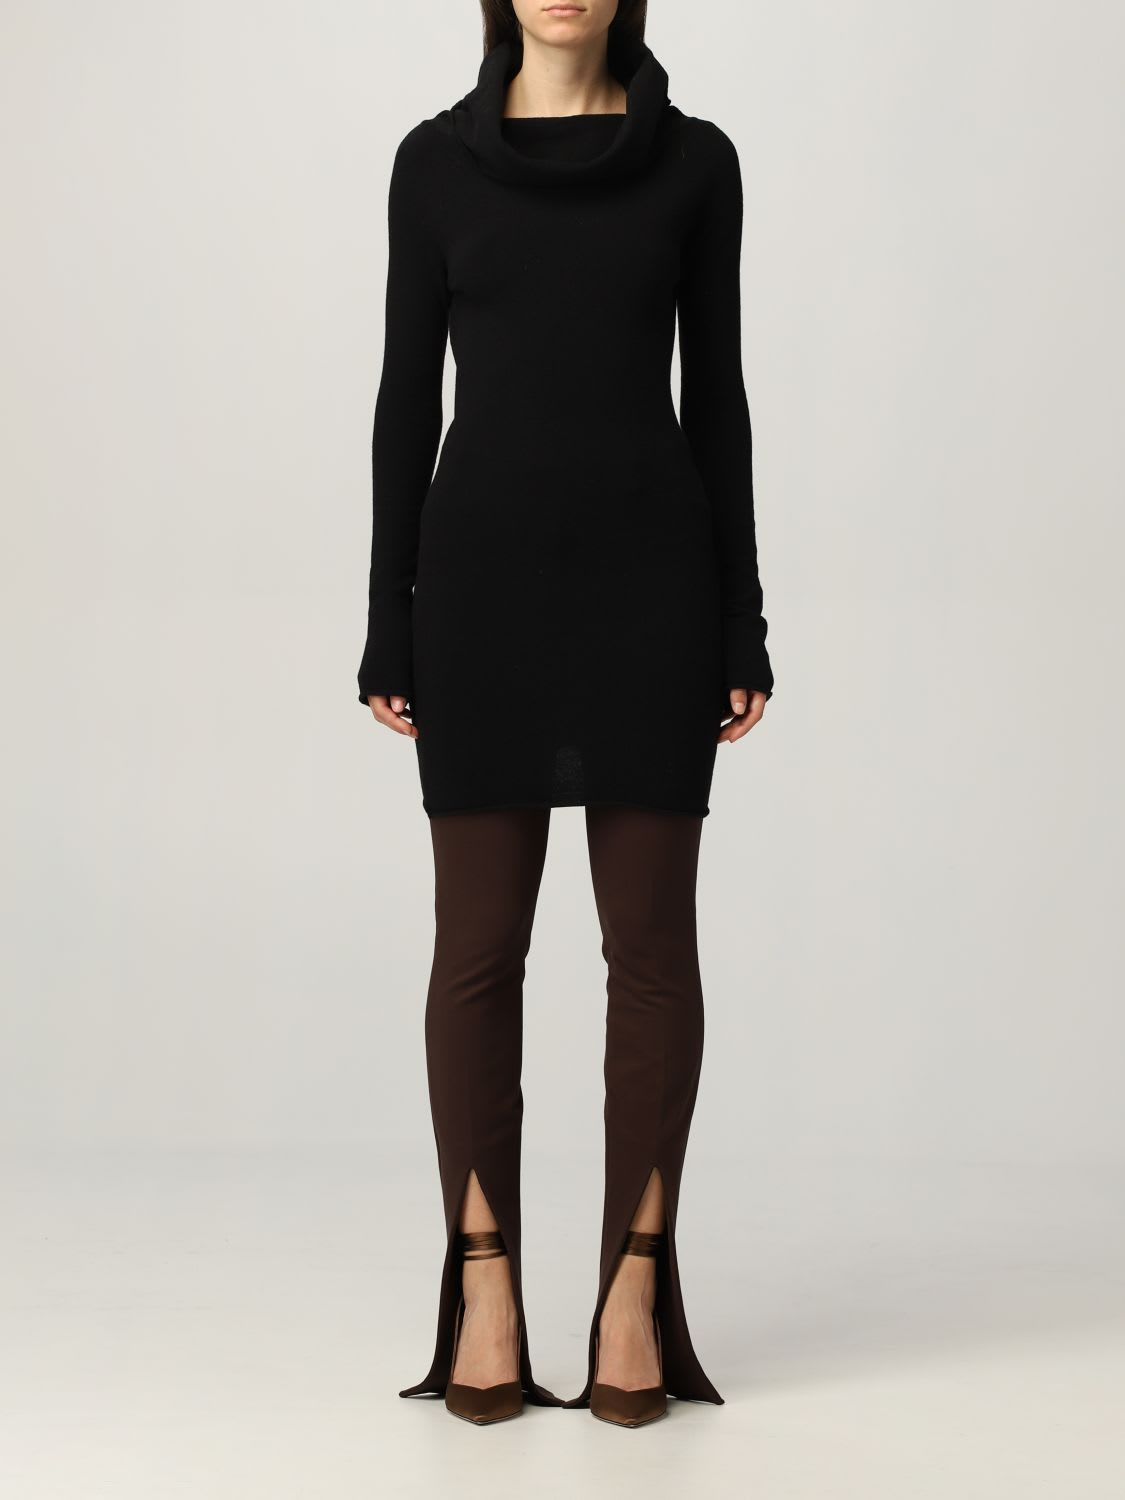 Buy The Attico Dress The Attico Dress In Stretch Wool Blend online, shop The Attico with free shipping